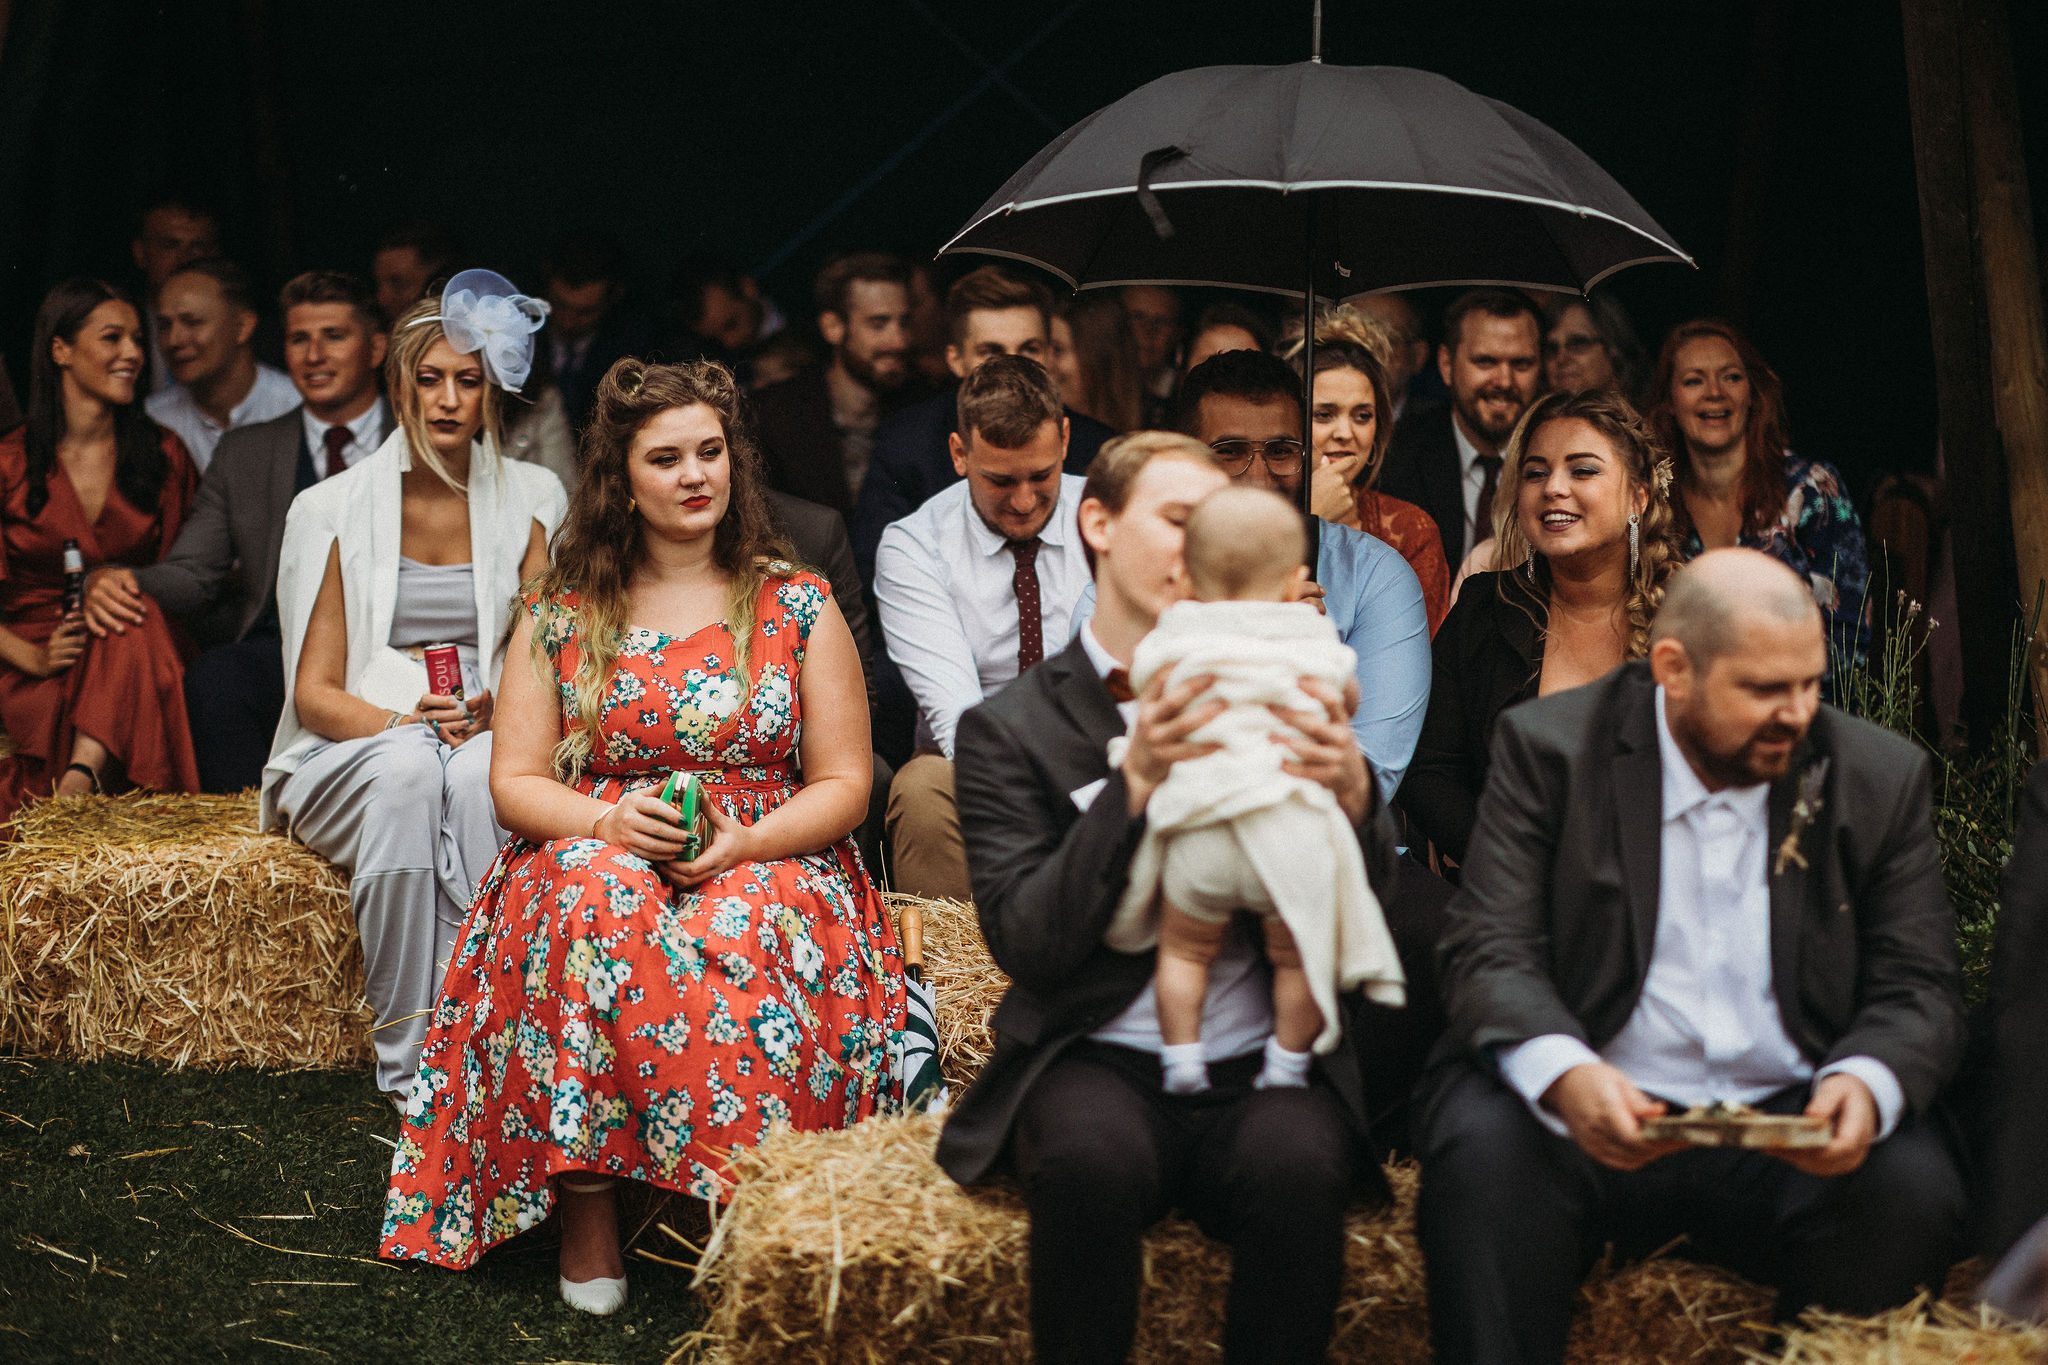 Wedding guests on hay bales